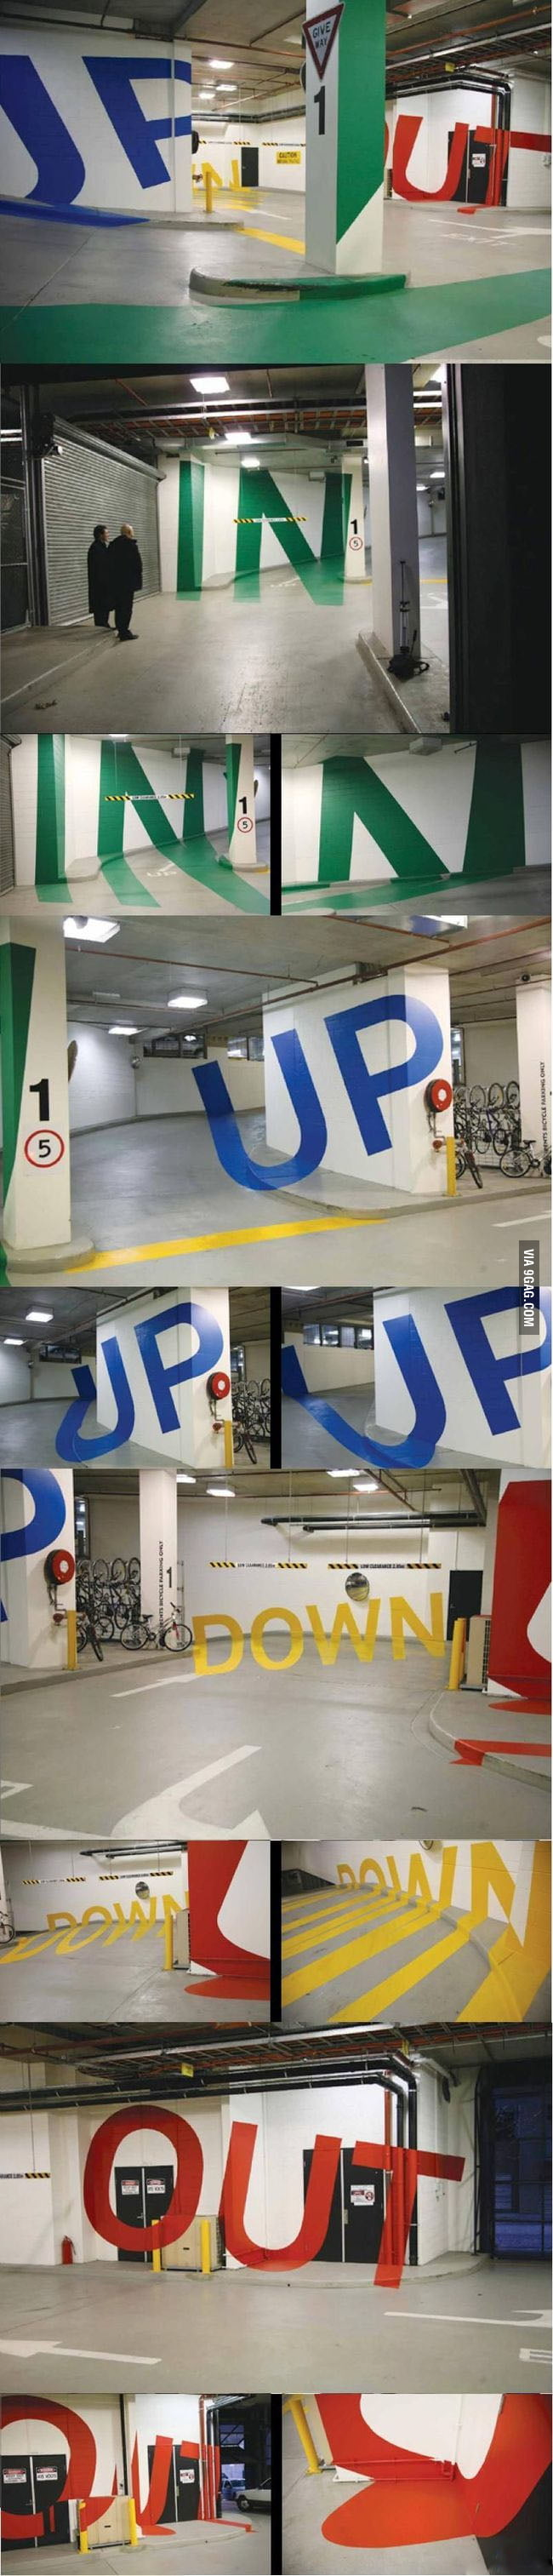 This is one cool parking hall